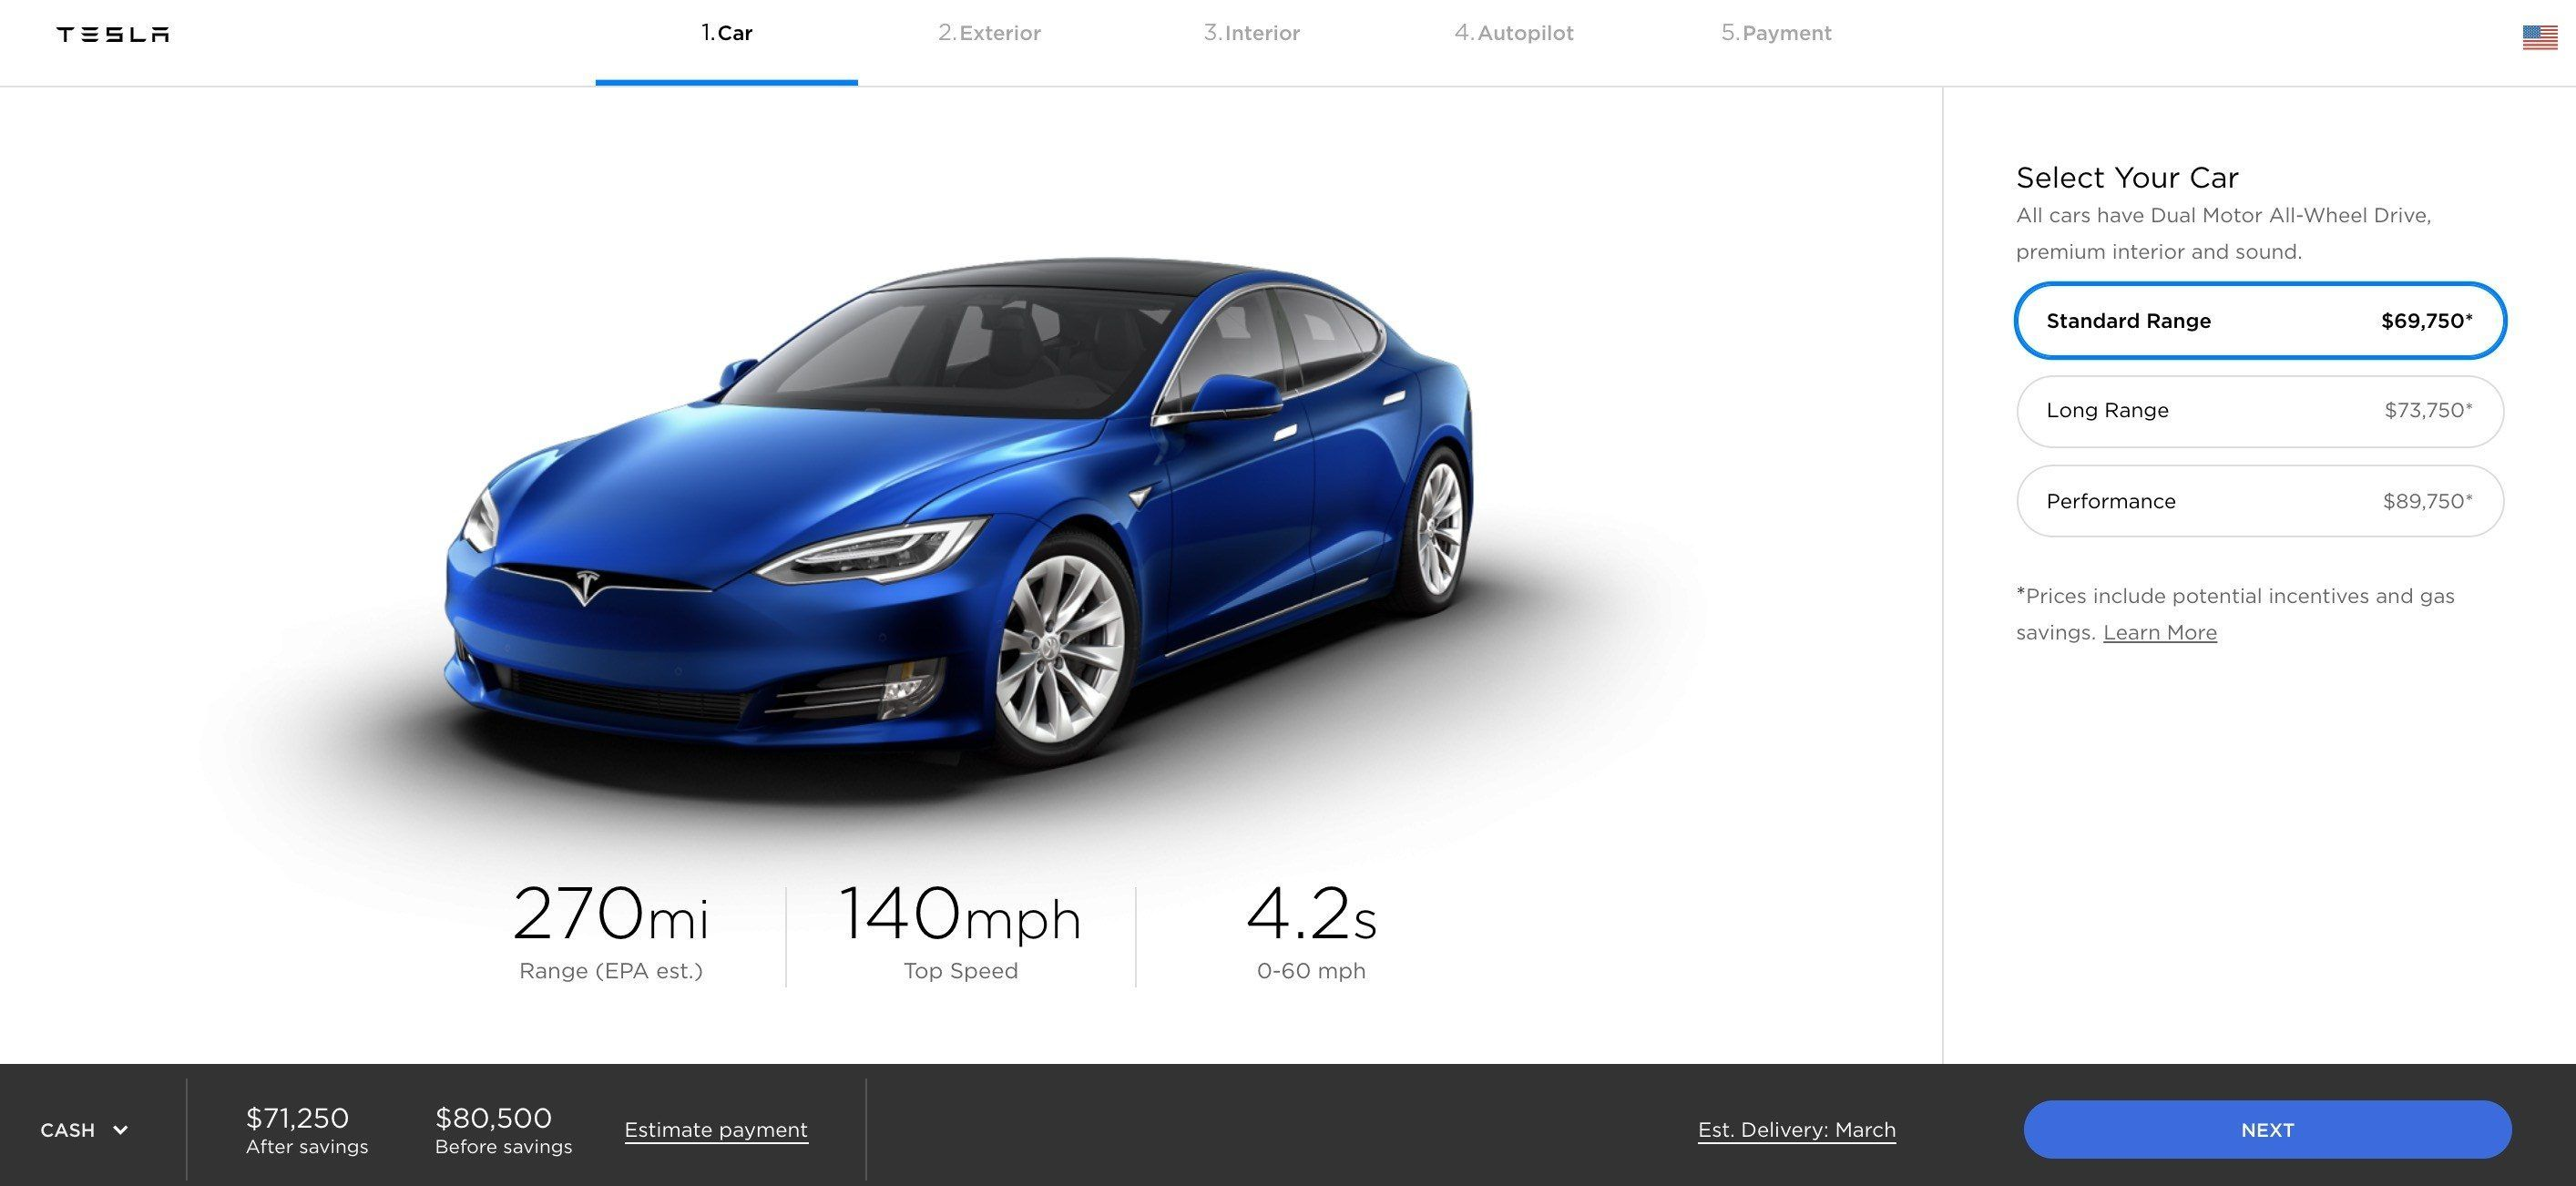 Tesla Delays Price Increase Boost Orders At The End Of The